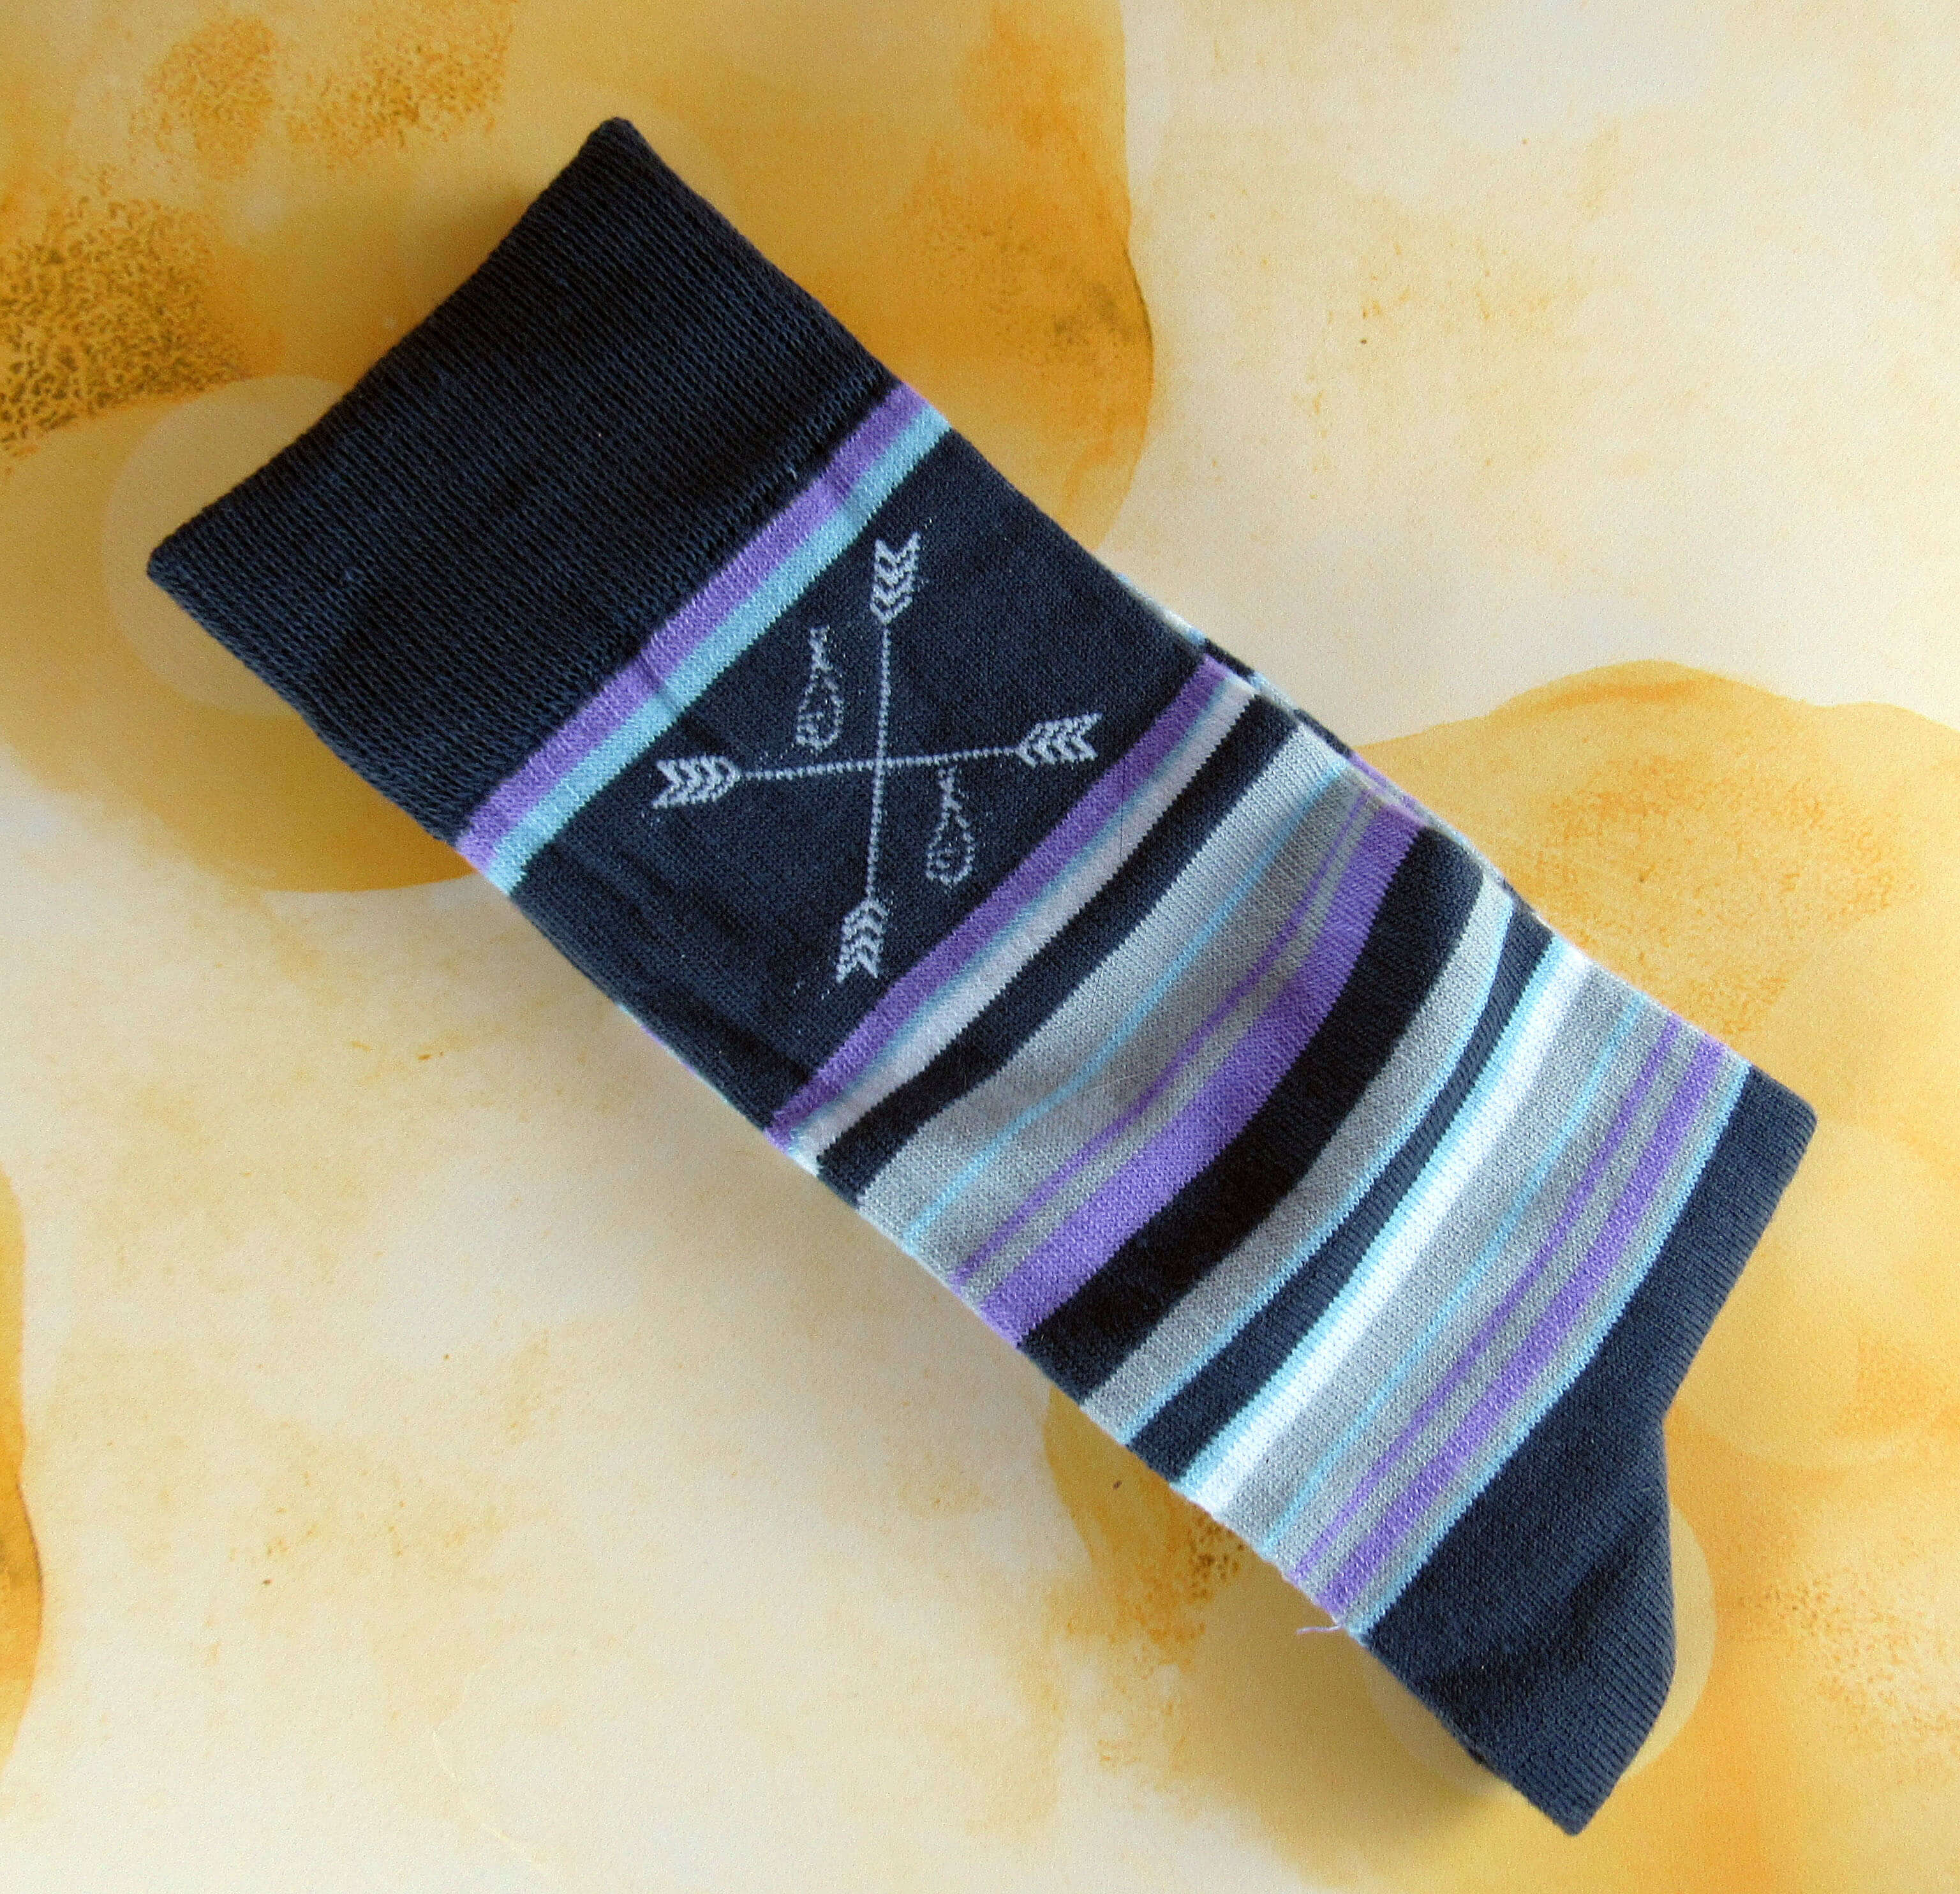 Southern Scholar Men's Sock Subscription Box Review & Coupon – August 2016